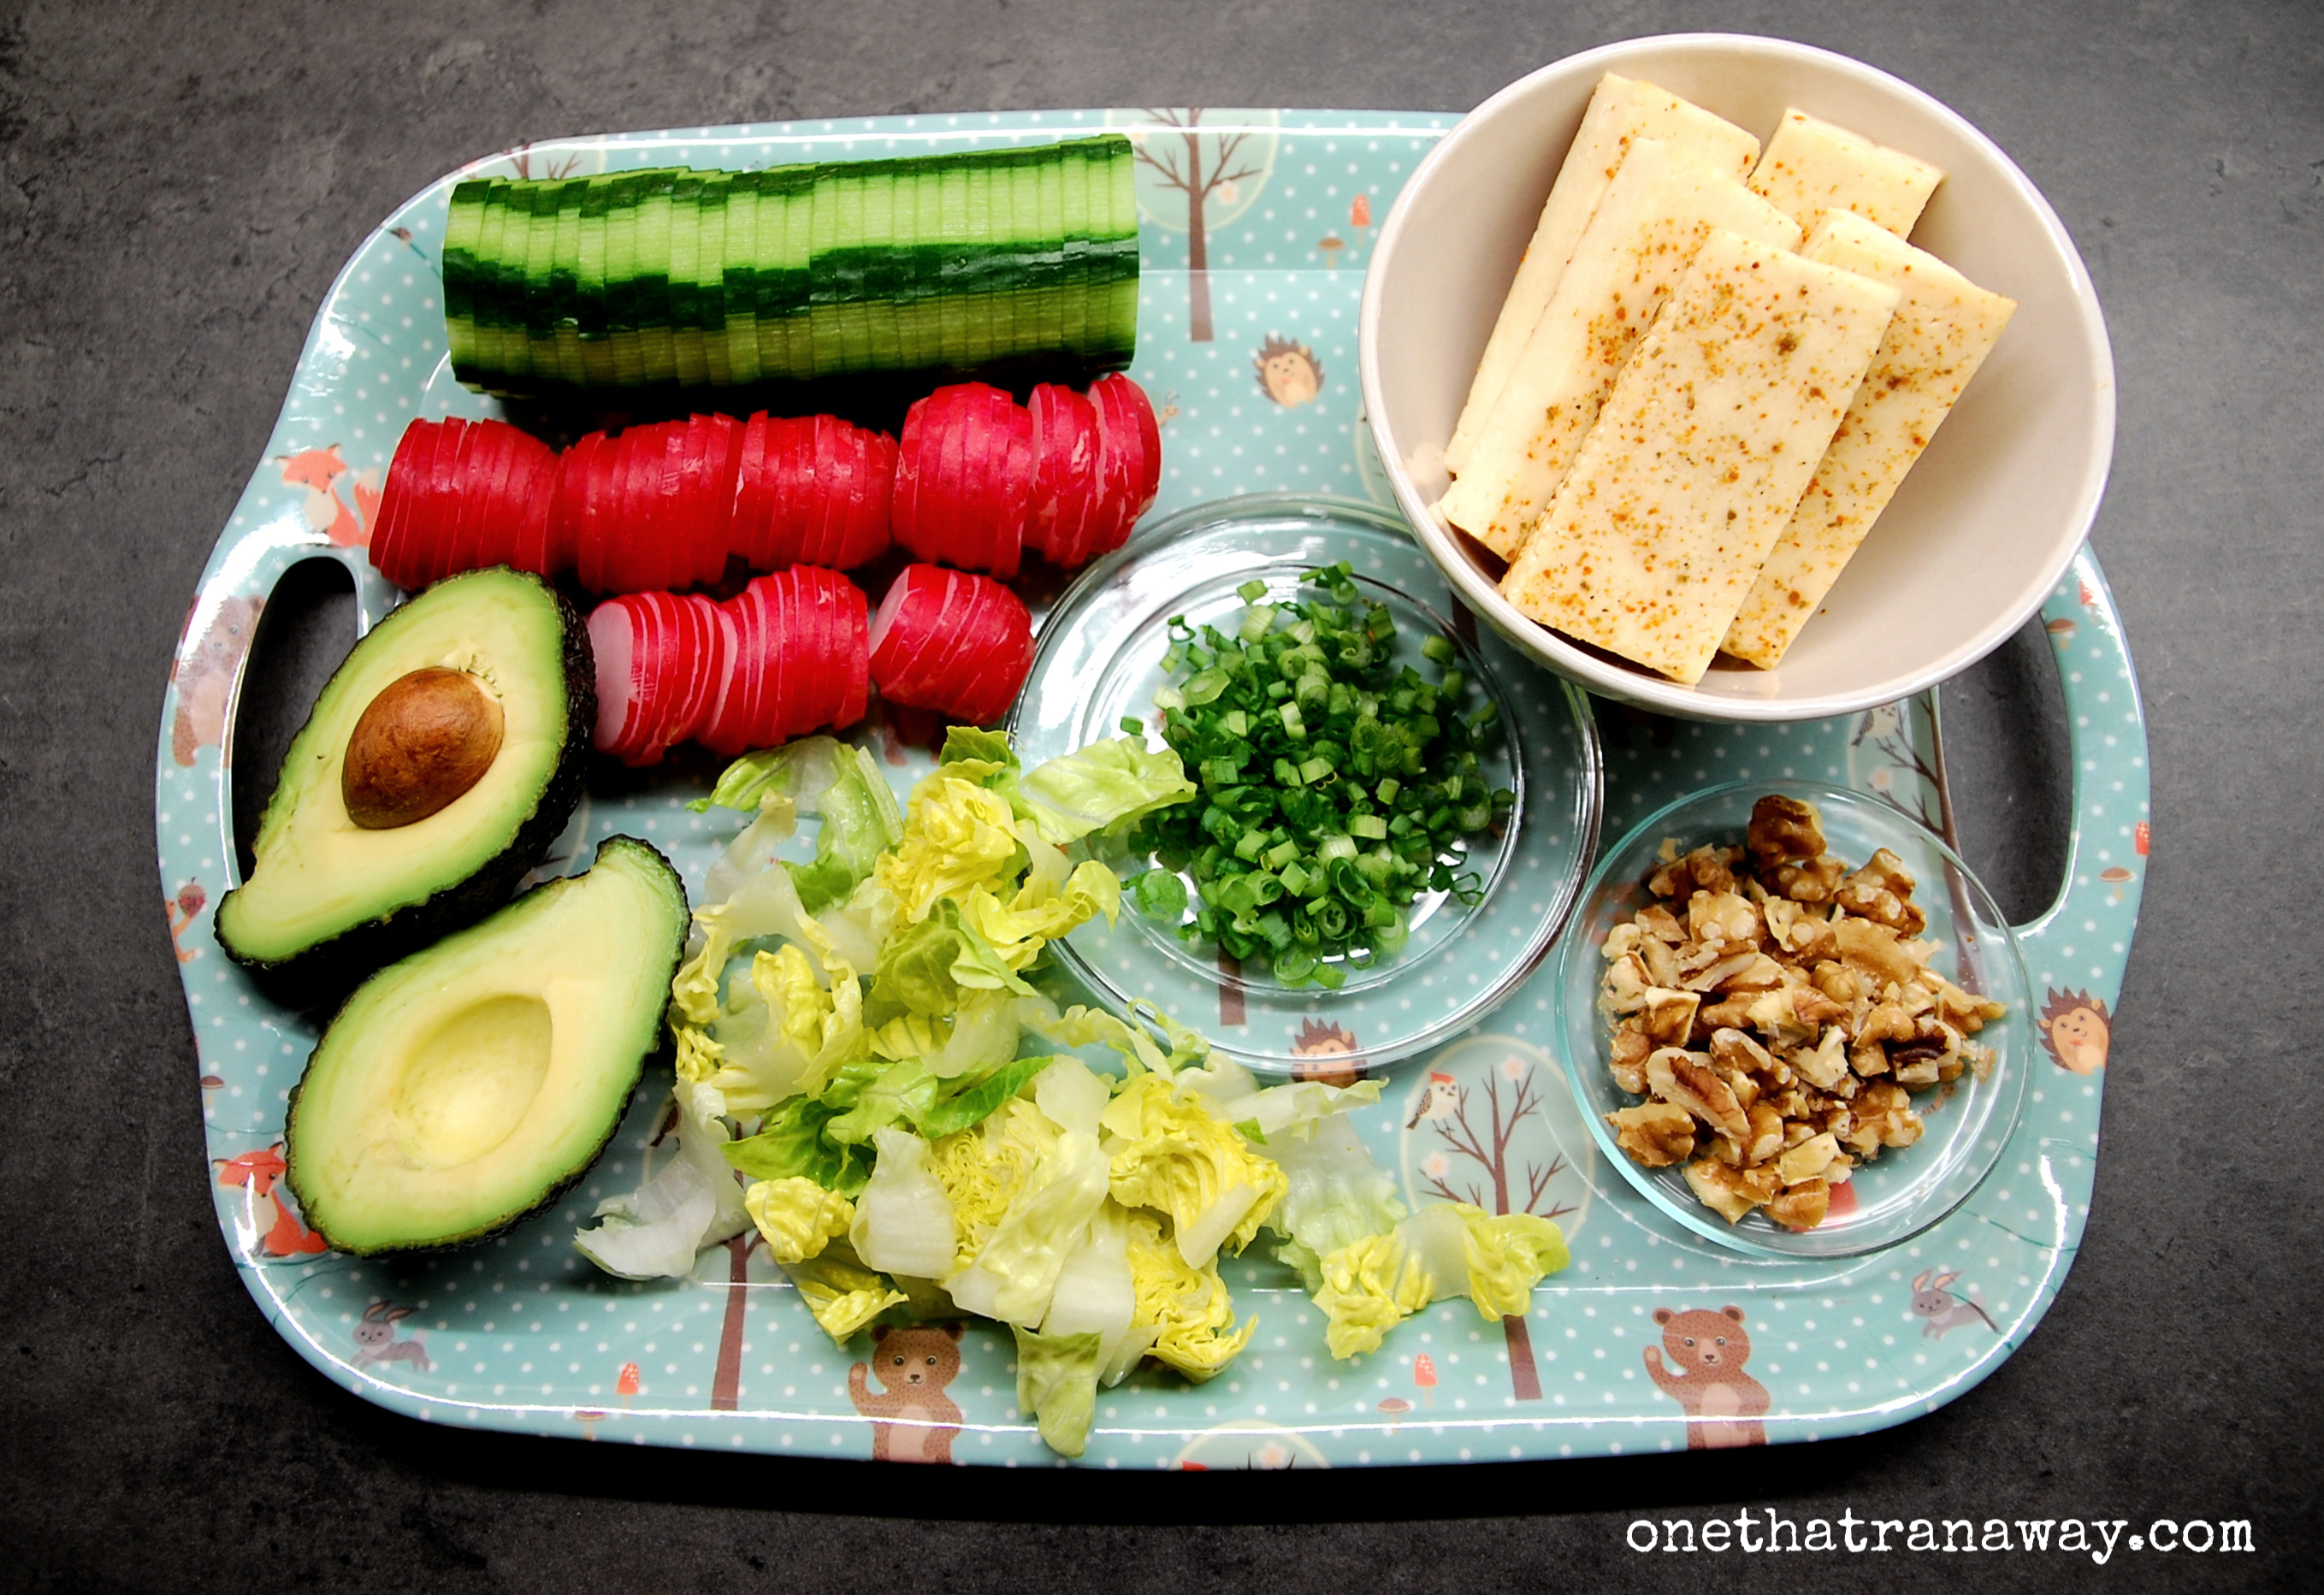 cucumber, red radishes, avocado, walnuts and halloumi cheese on a tray